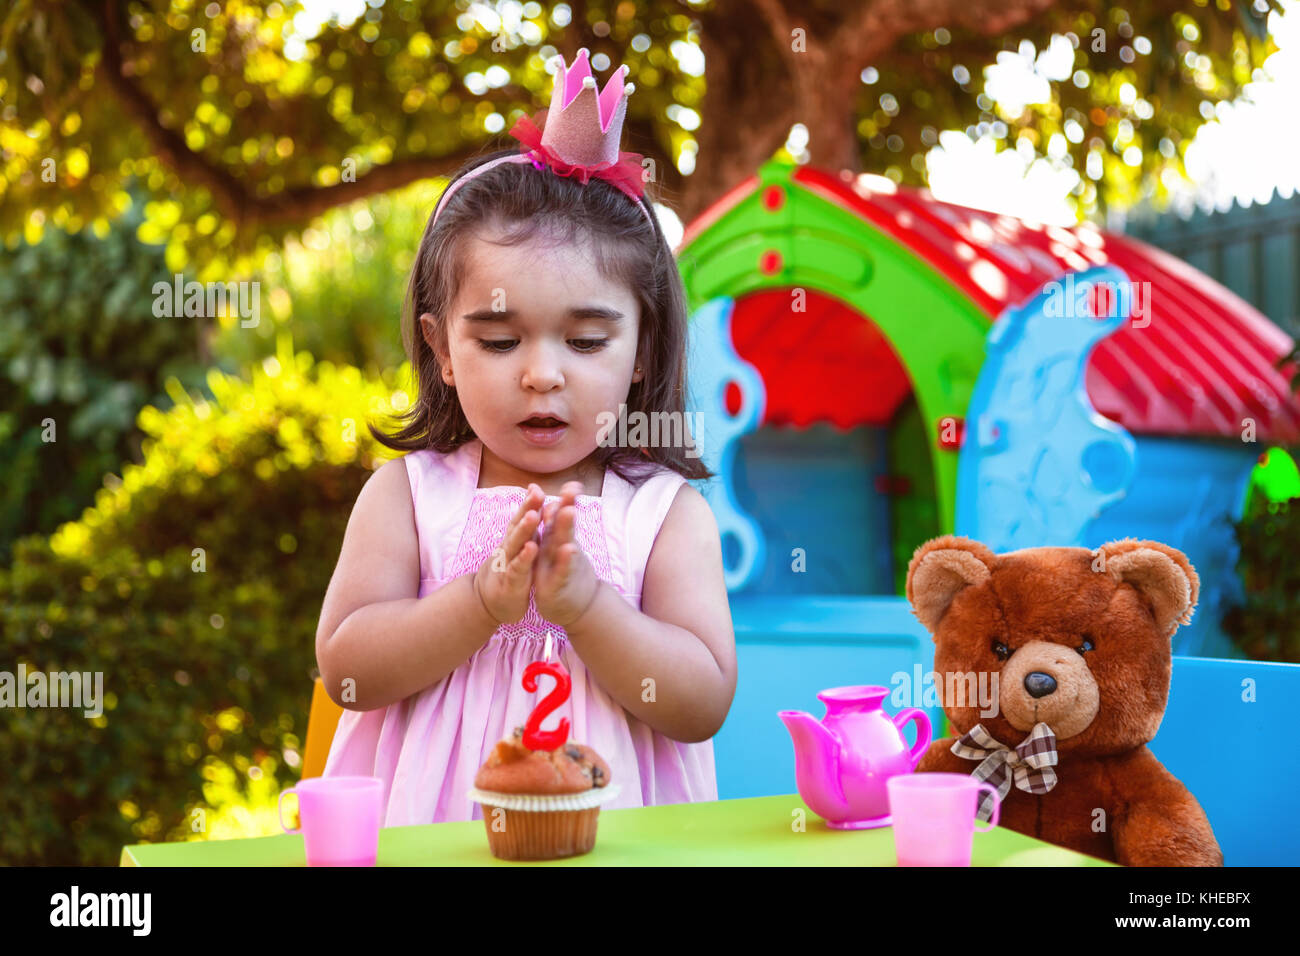 Baby toddler girl in outdoor second birthday party clapping hands at cake with Teddy Bear as best friend, playhouse - Stock Image